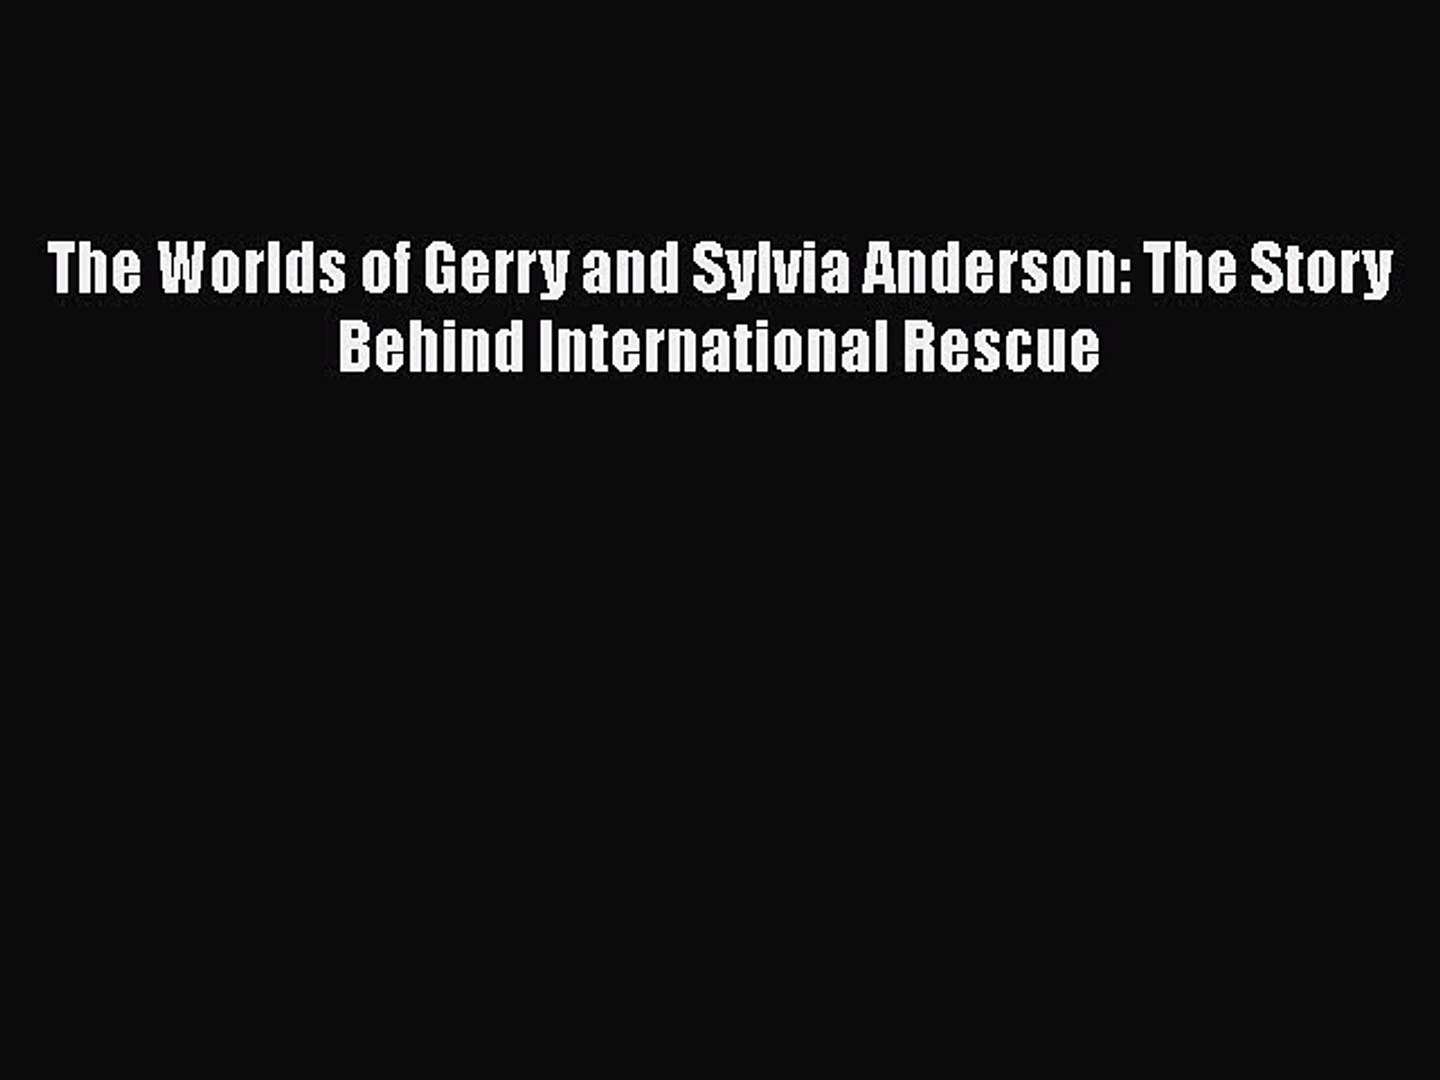 Download The Worlds of Gerry and Sylvia Anderson: The Story Behind International Rescue Ebook